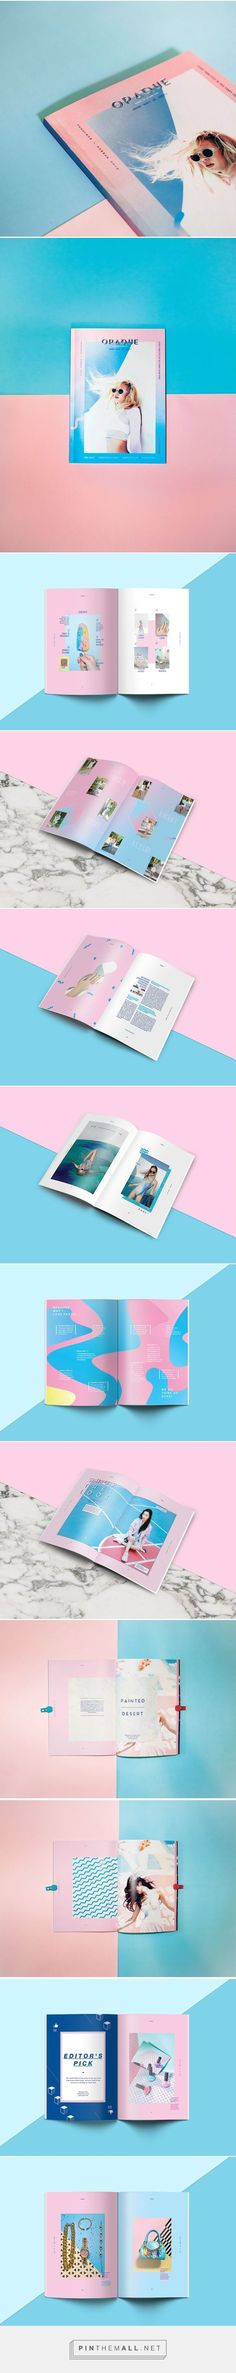 Graphic Design - Graphic Design Ideas  - Magazine design: OPAQUE by Widya Widya...   Graphic Design Ideas :     – Picture :     – Description  Magazine design: OPAQUE by Widya Widya  -Read More –